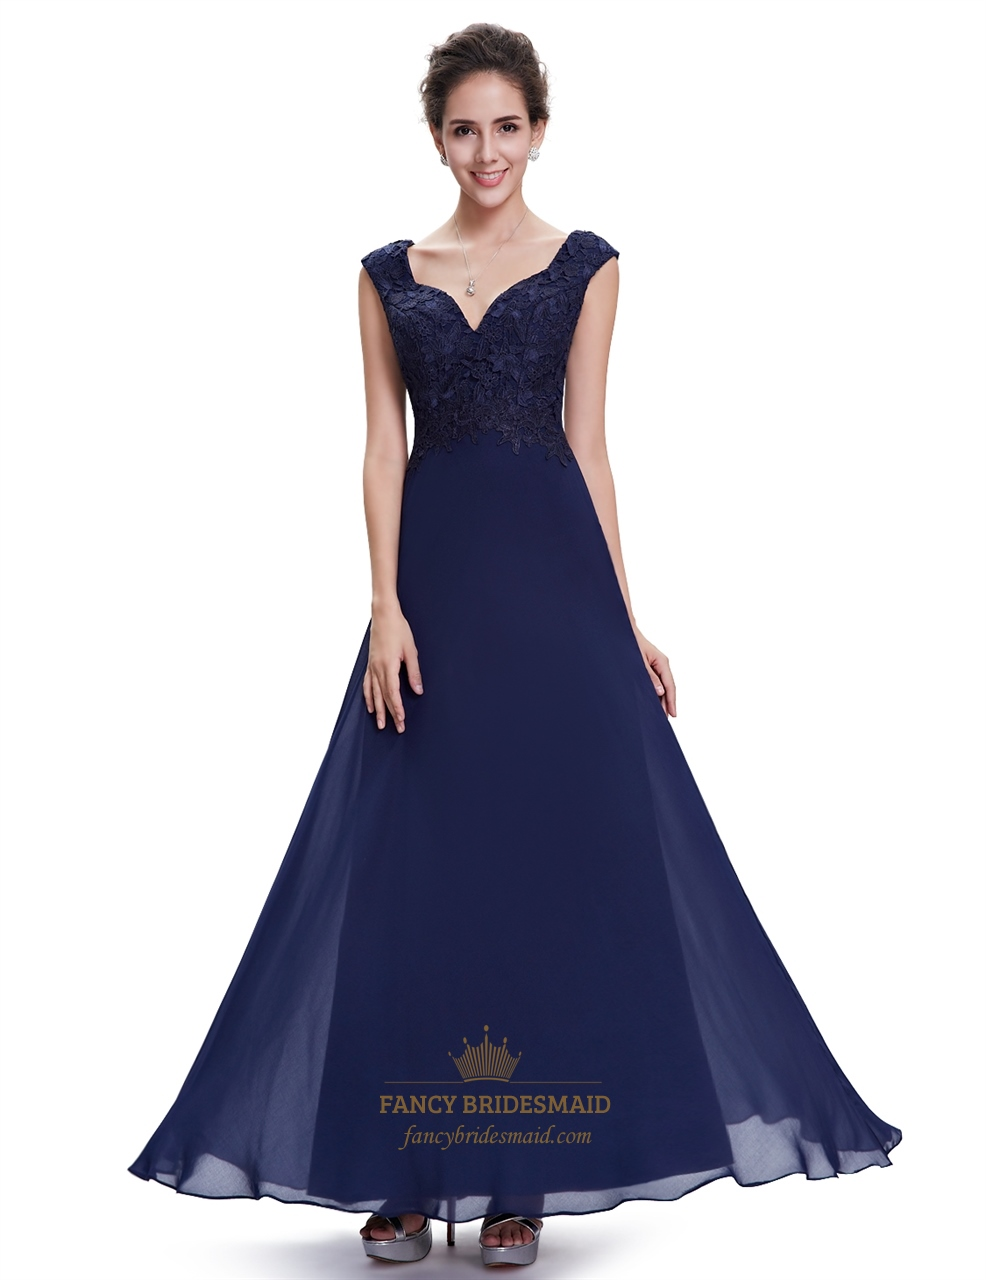 Navy blue cap sleeves chiffon long bridesmaid dresses with lace navy blue cap sleeves chiffon long bridesmaid dresses with lace bodice ombrellifo Images